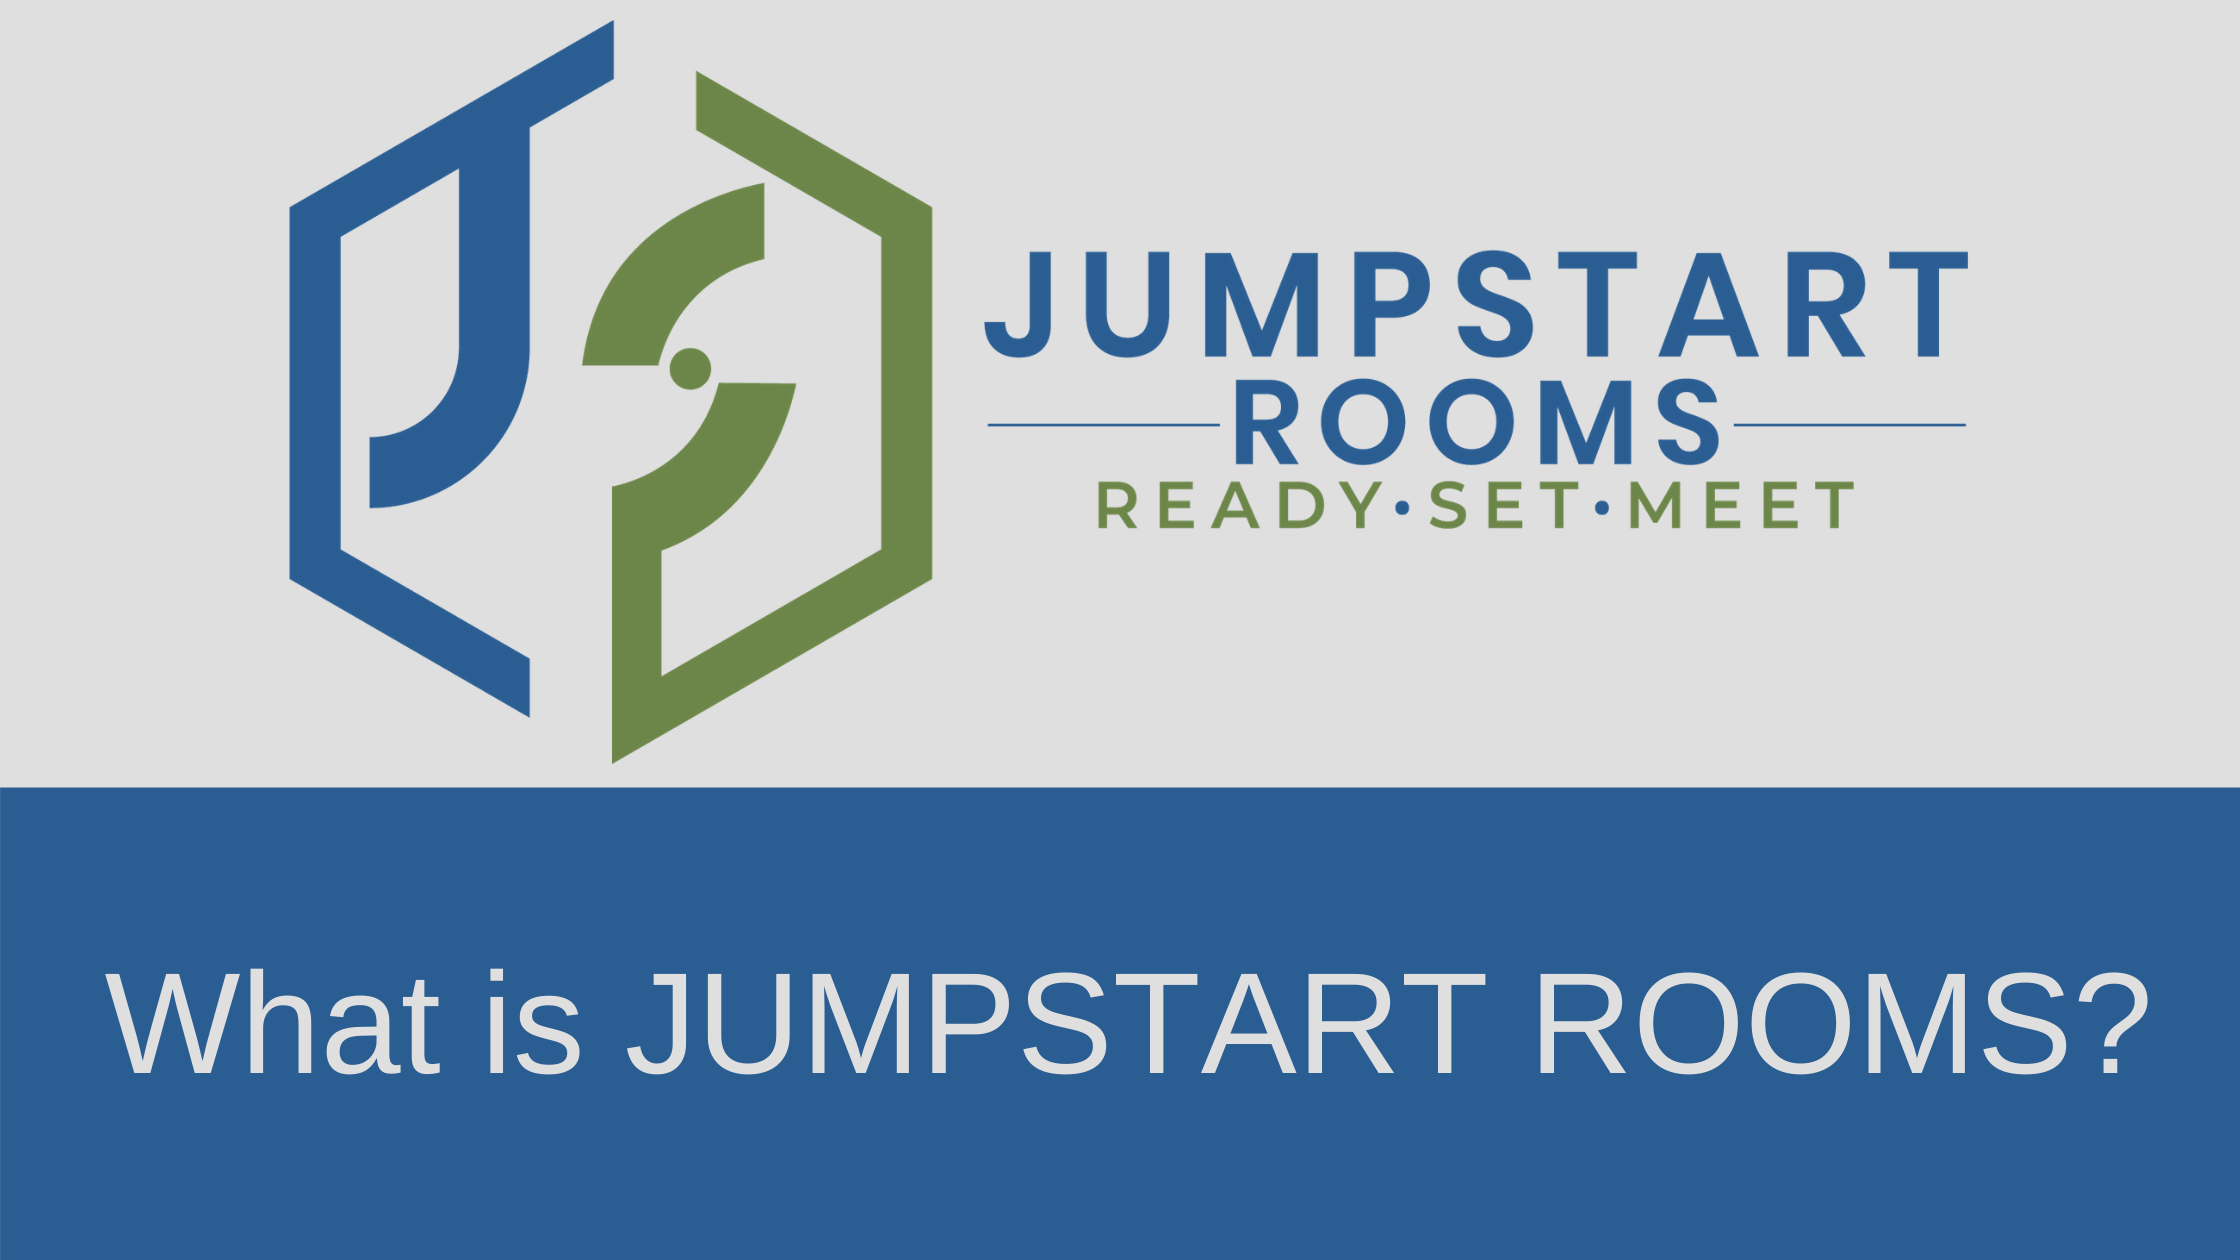 What is JUMPSTART ROOMS?